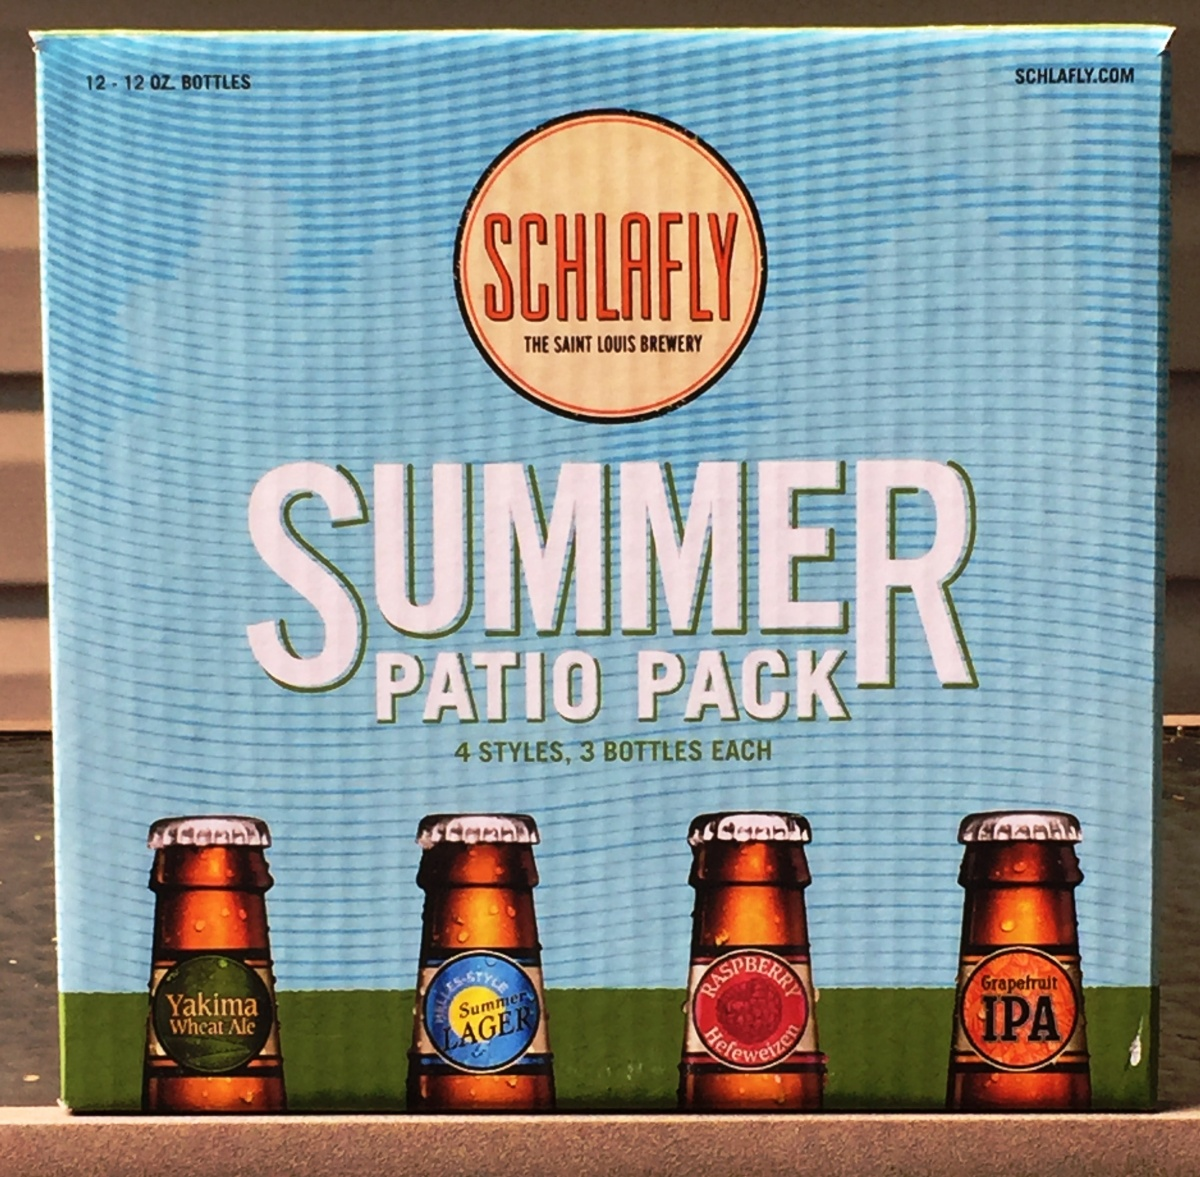 Schlafly Summer Patio Pack